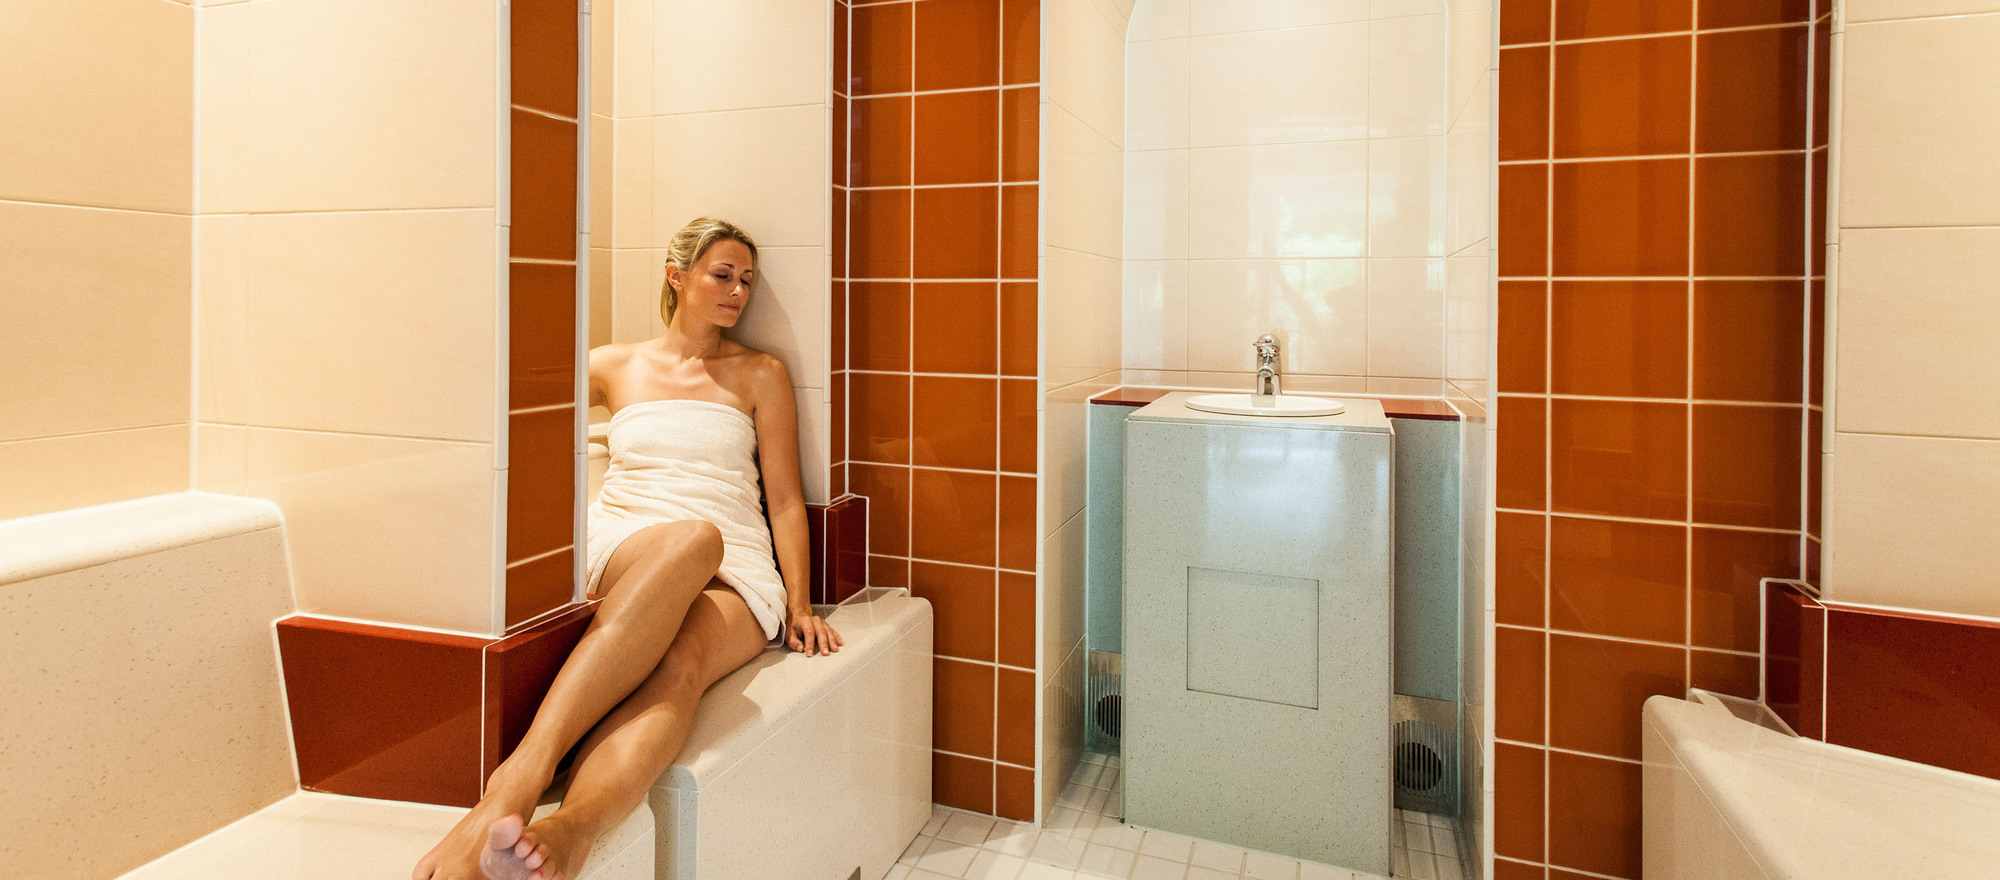 Feel good in the tepidarium with a pleasant ambient temperature in the 4-star hotel Ringhotel Birke in Kiel